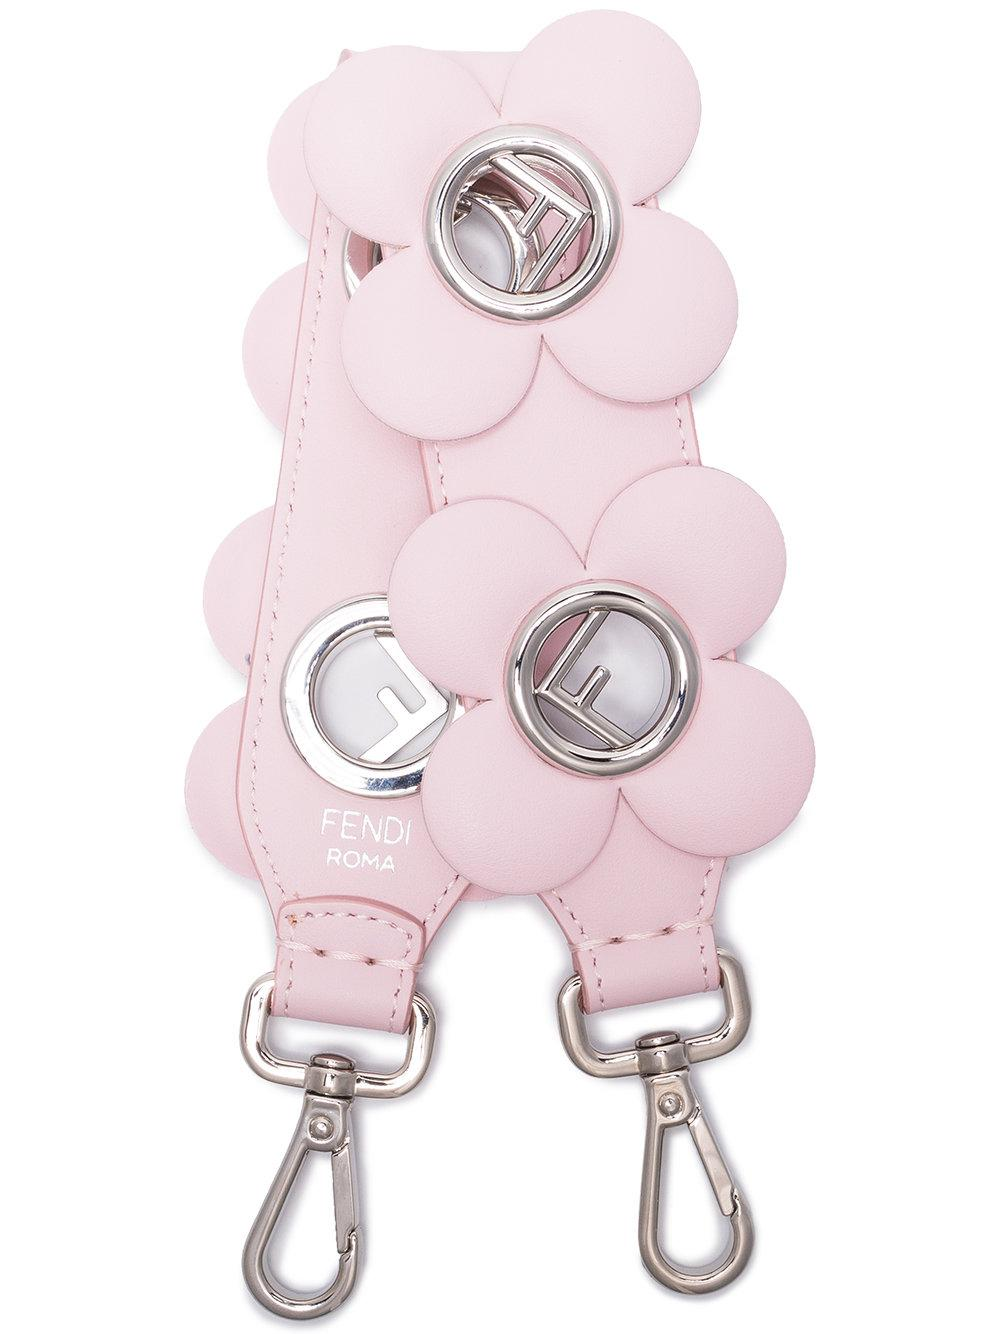 Fendi Pink Mini Strap You Floral Leather Bag Strap In Pink&purple